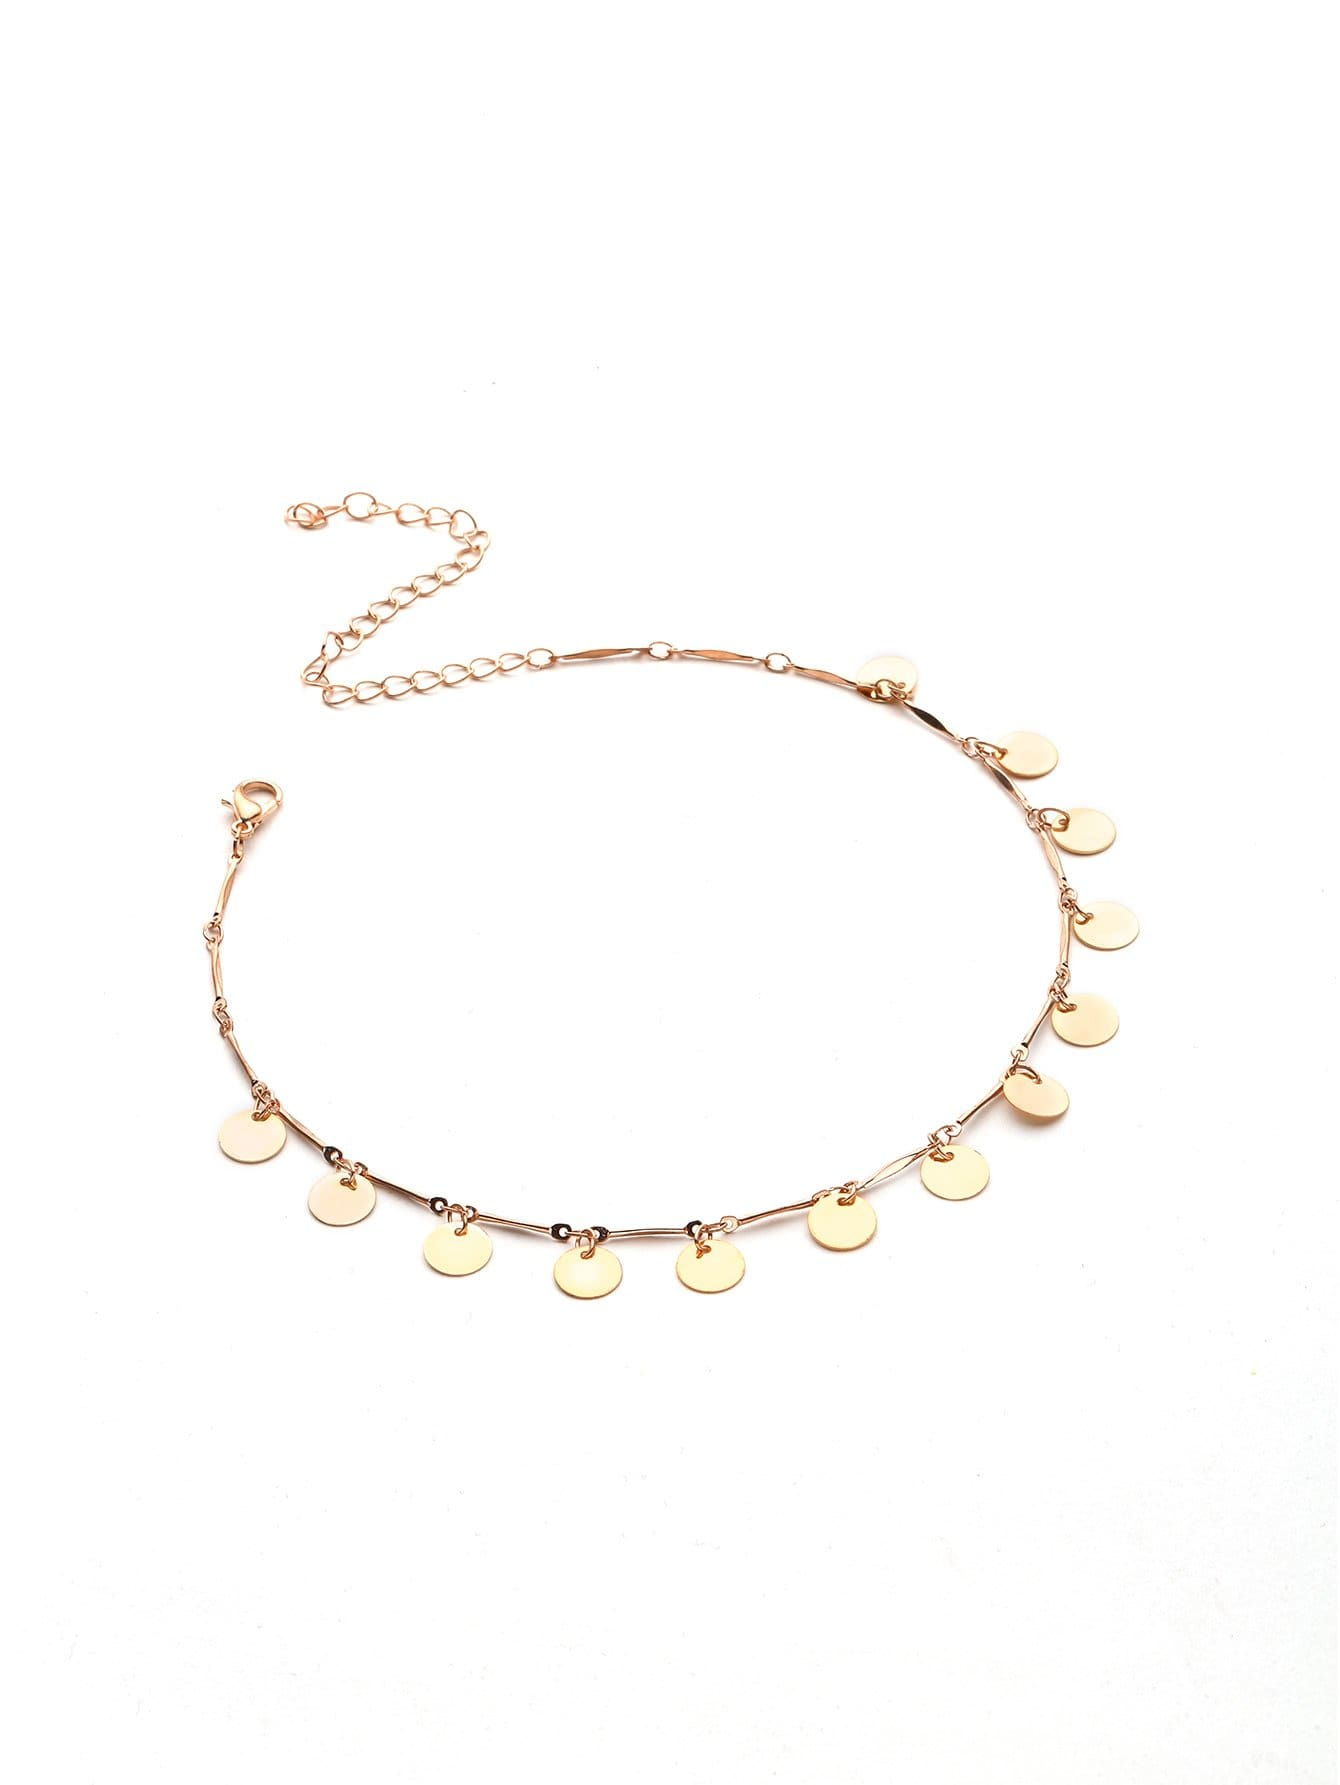 Sequin Embellished Chain Choker